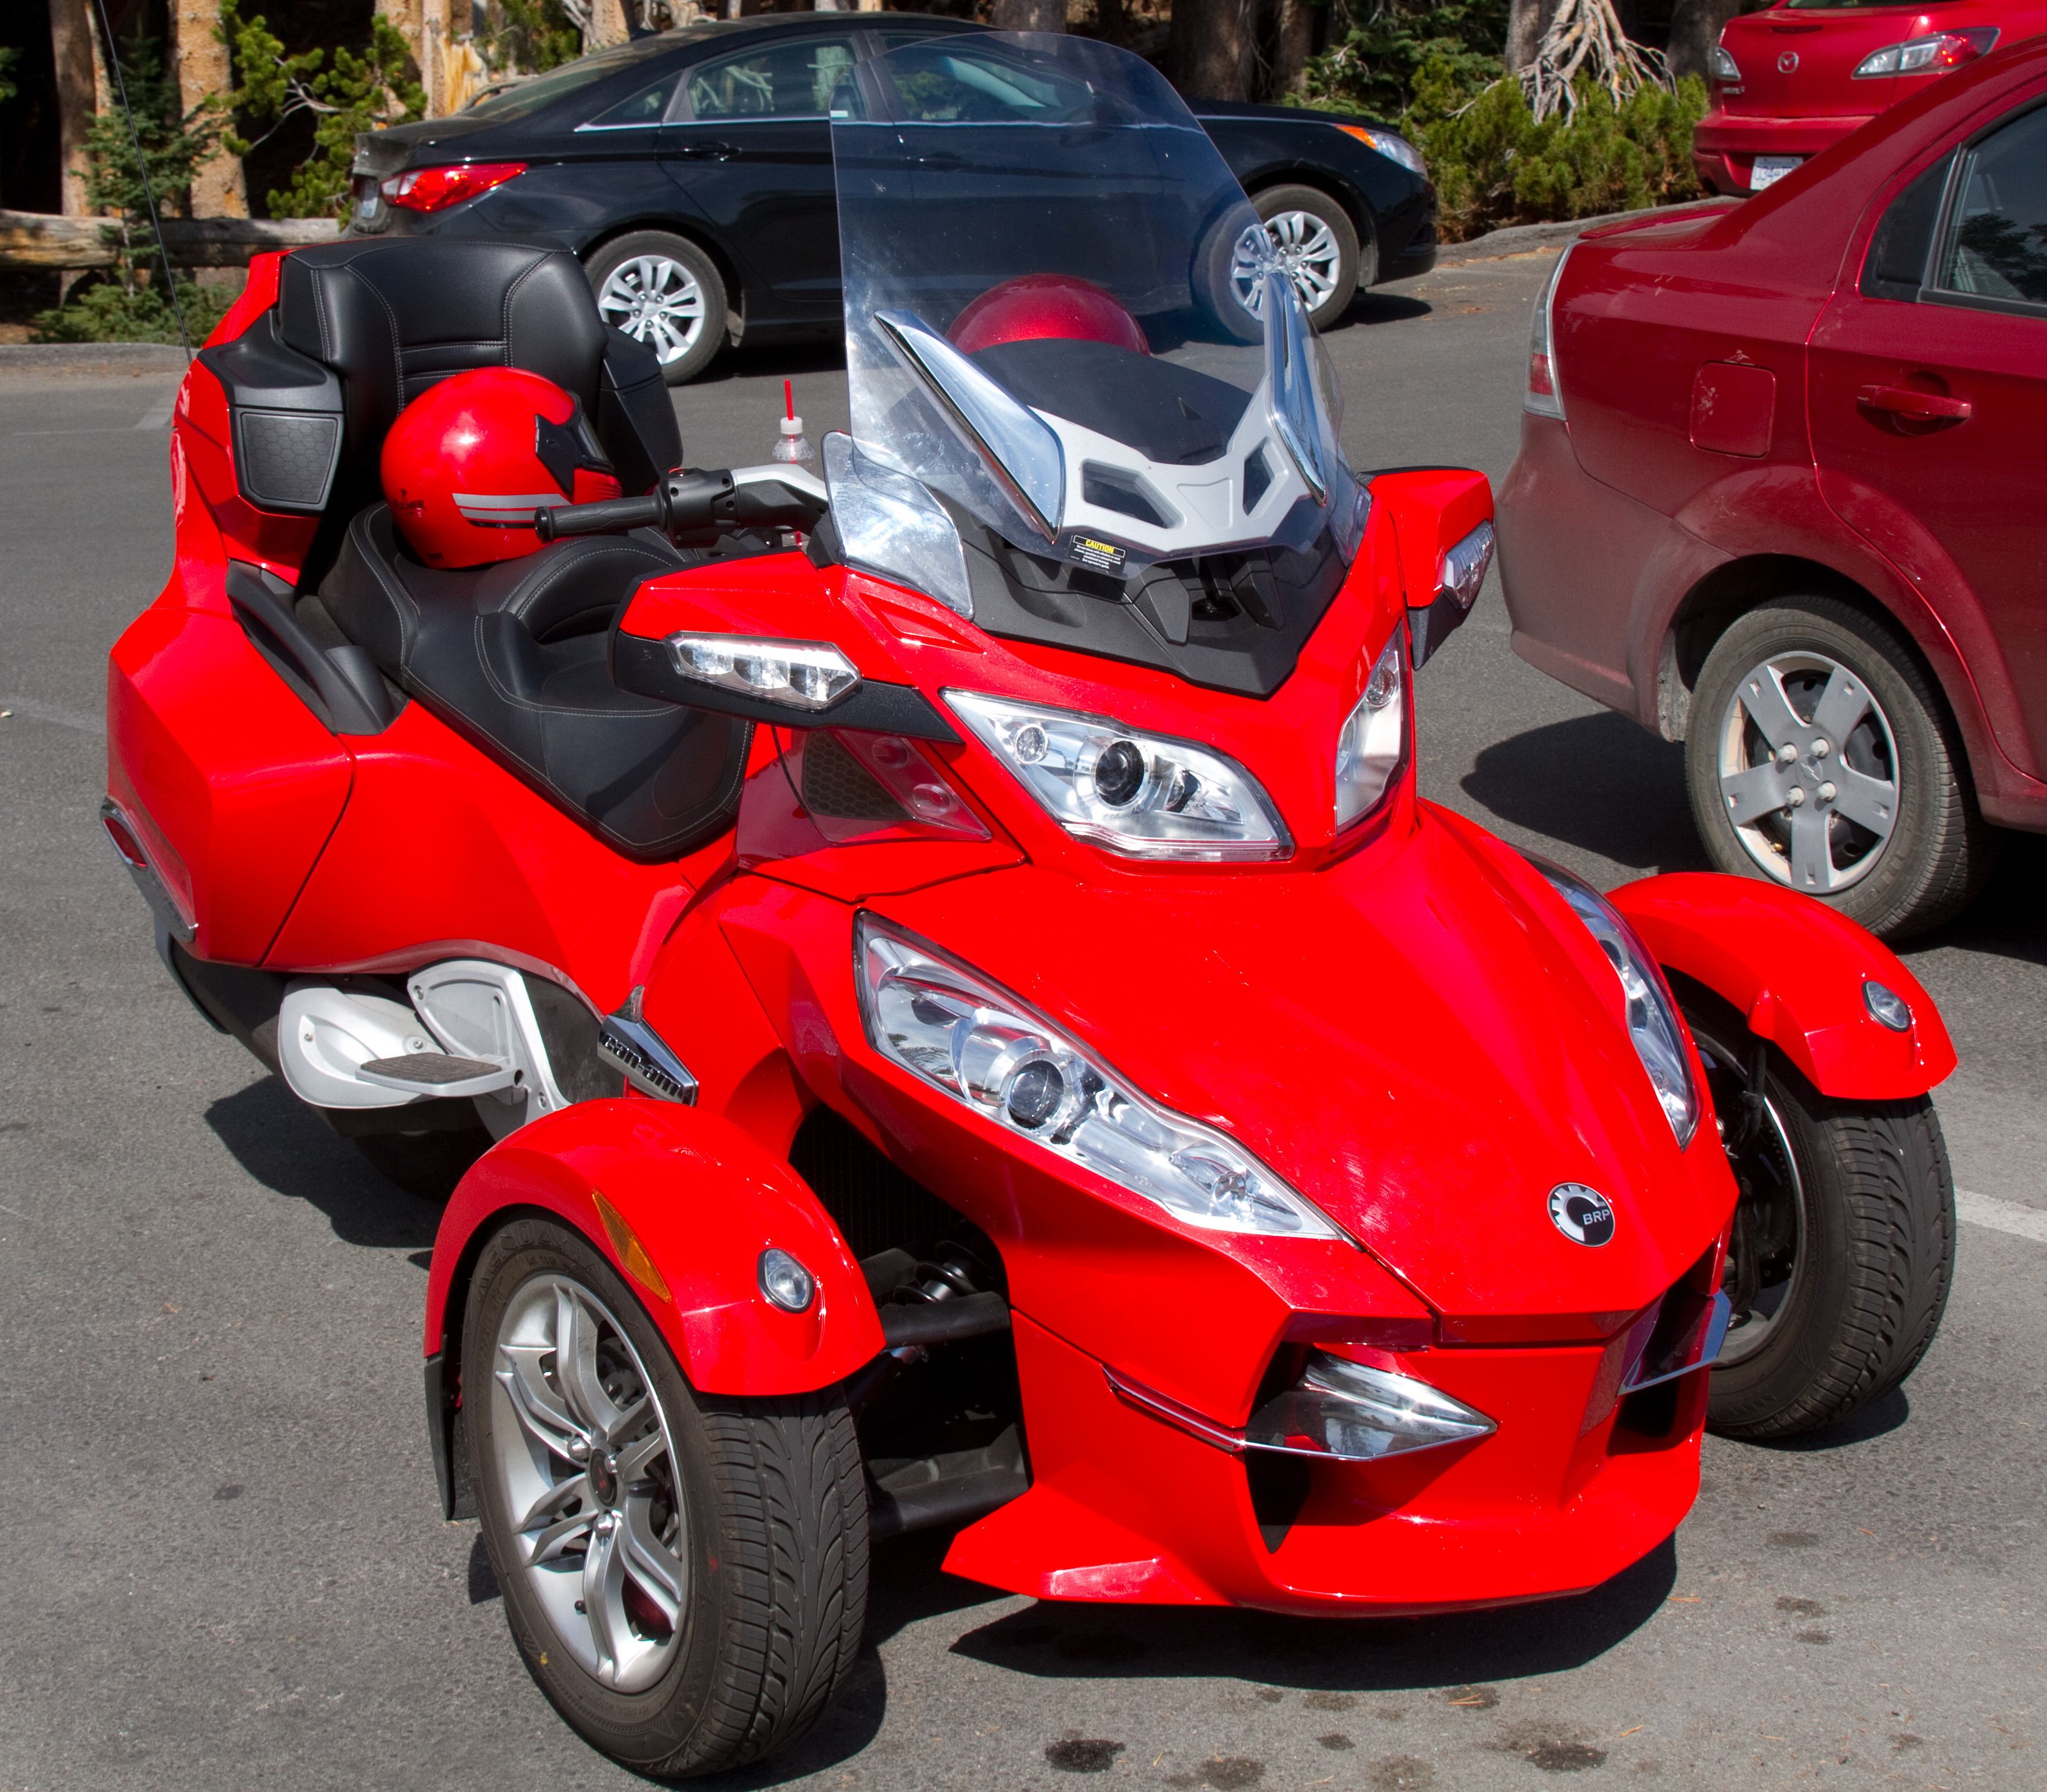 Brp Can Am >> File:BRP Can-Am Spyder Roadster (8044129660).jpg - Wikimedia Commons